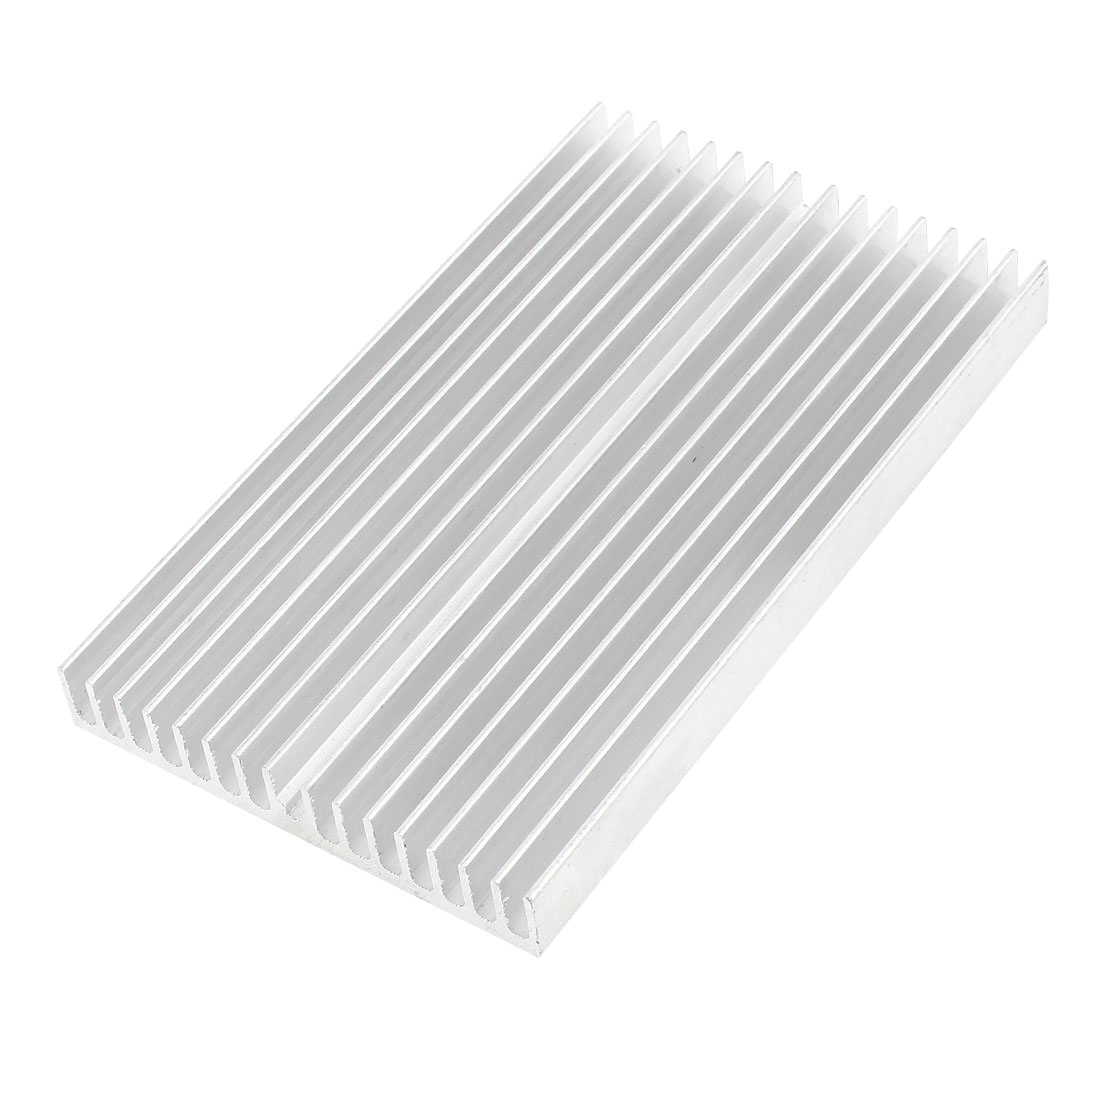 Silver Tone Aluminum Cooler Radiator Heat Sink Heatsink 100x60x10mm